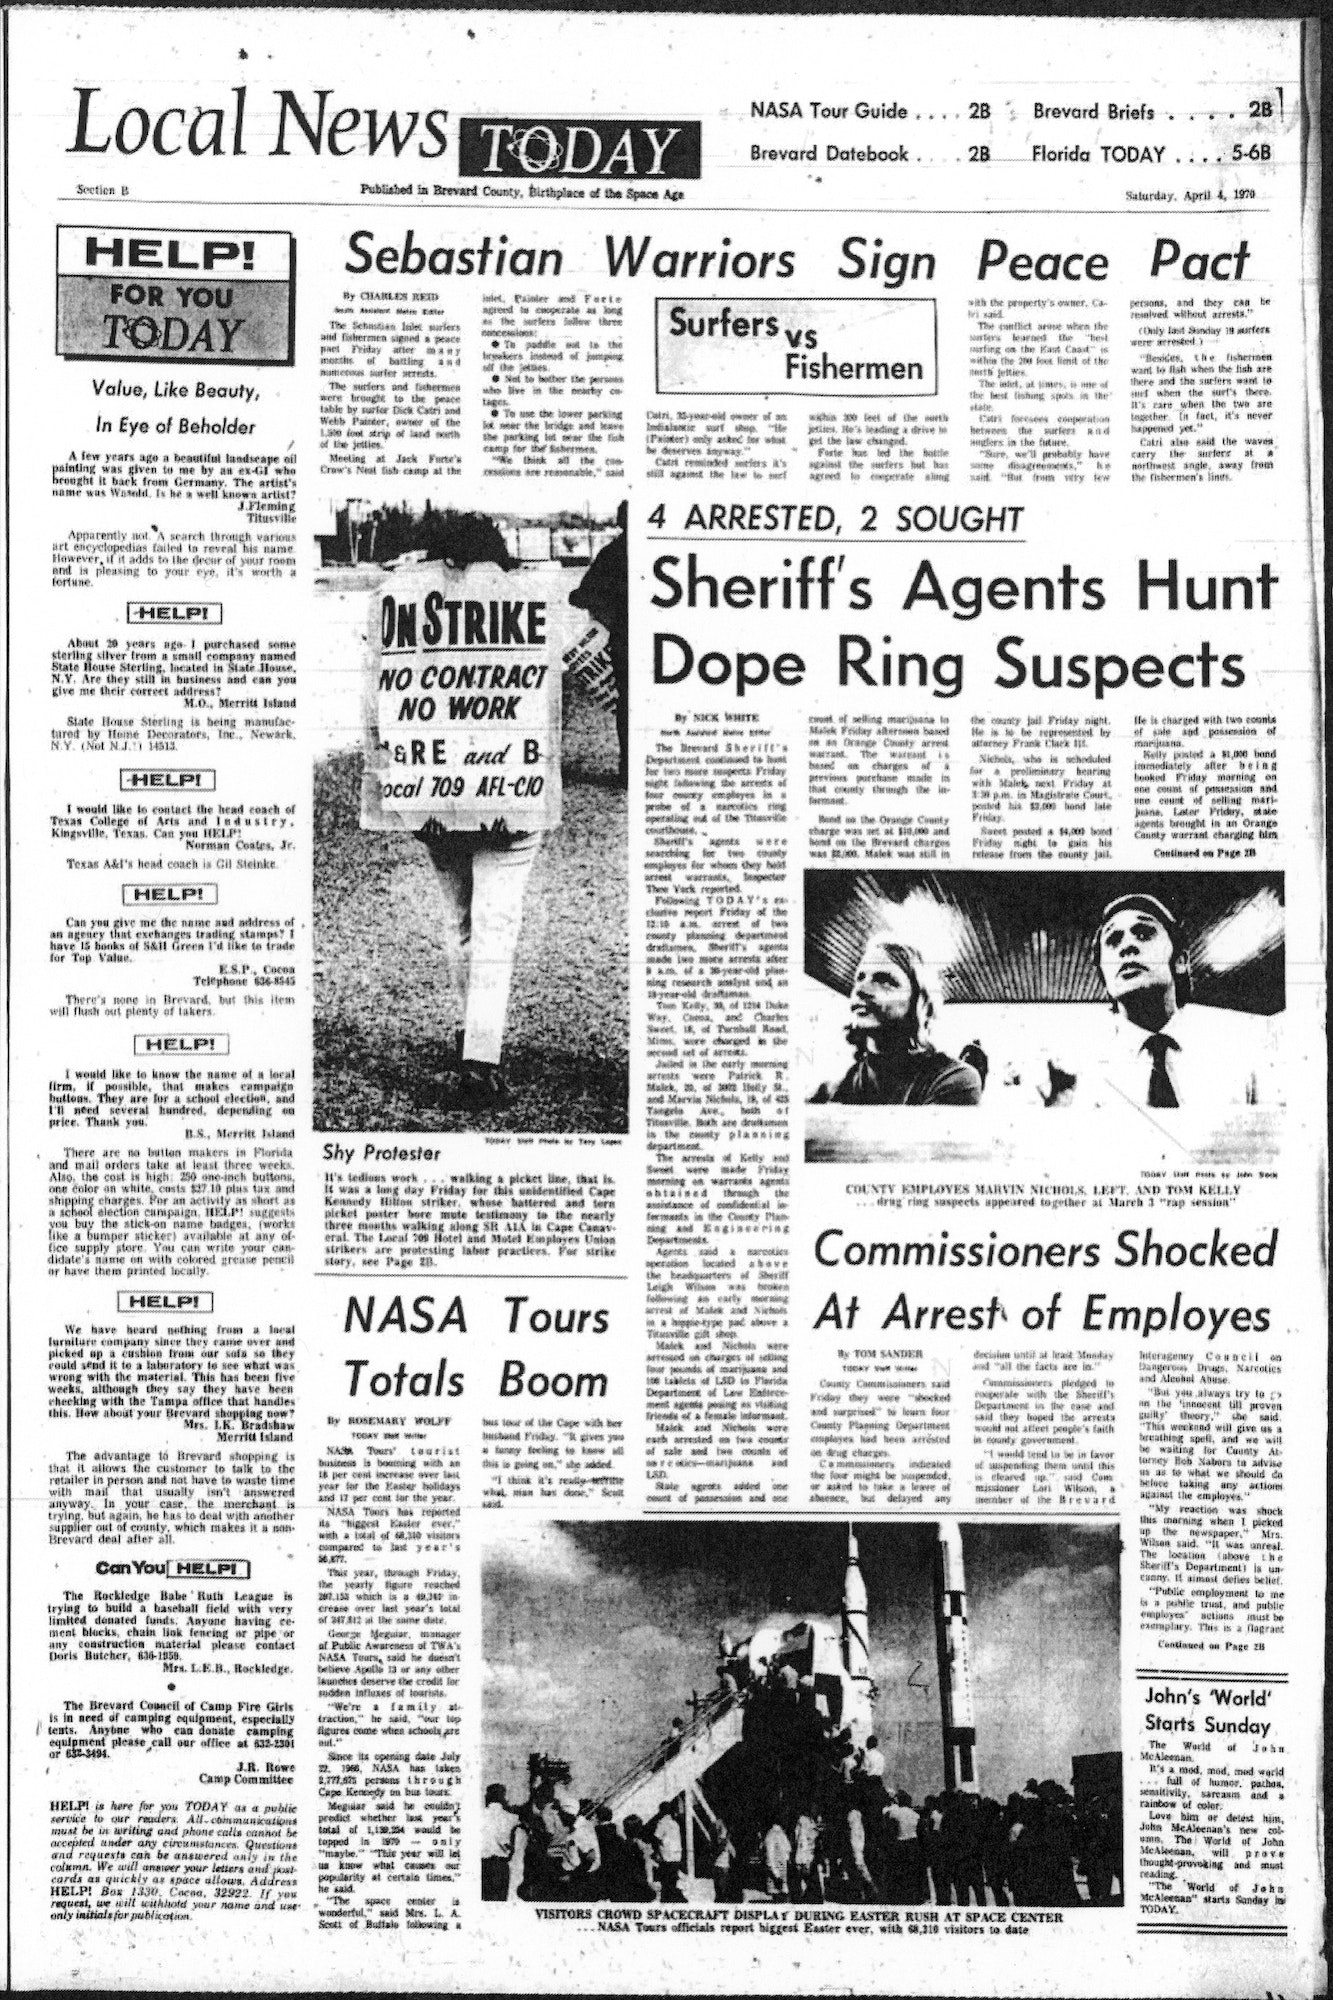 Florida Today Local News page from April 4, 1970